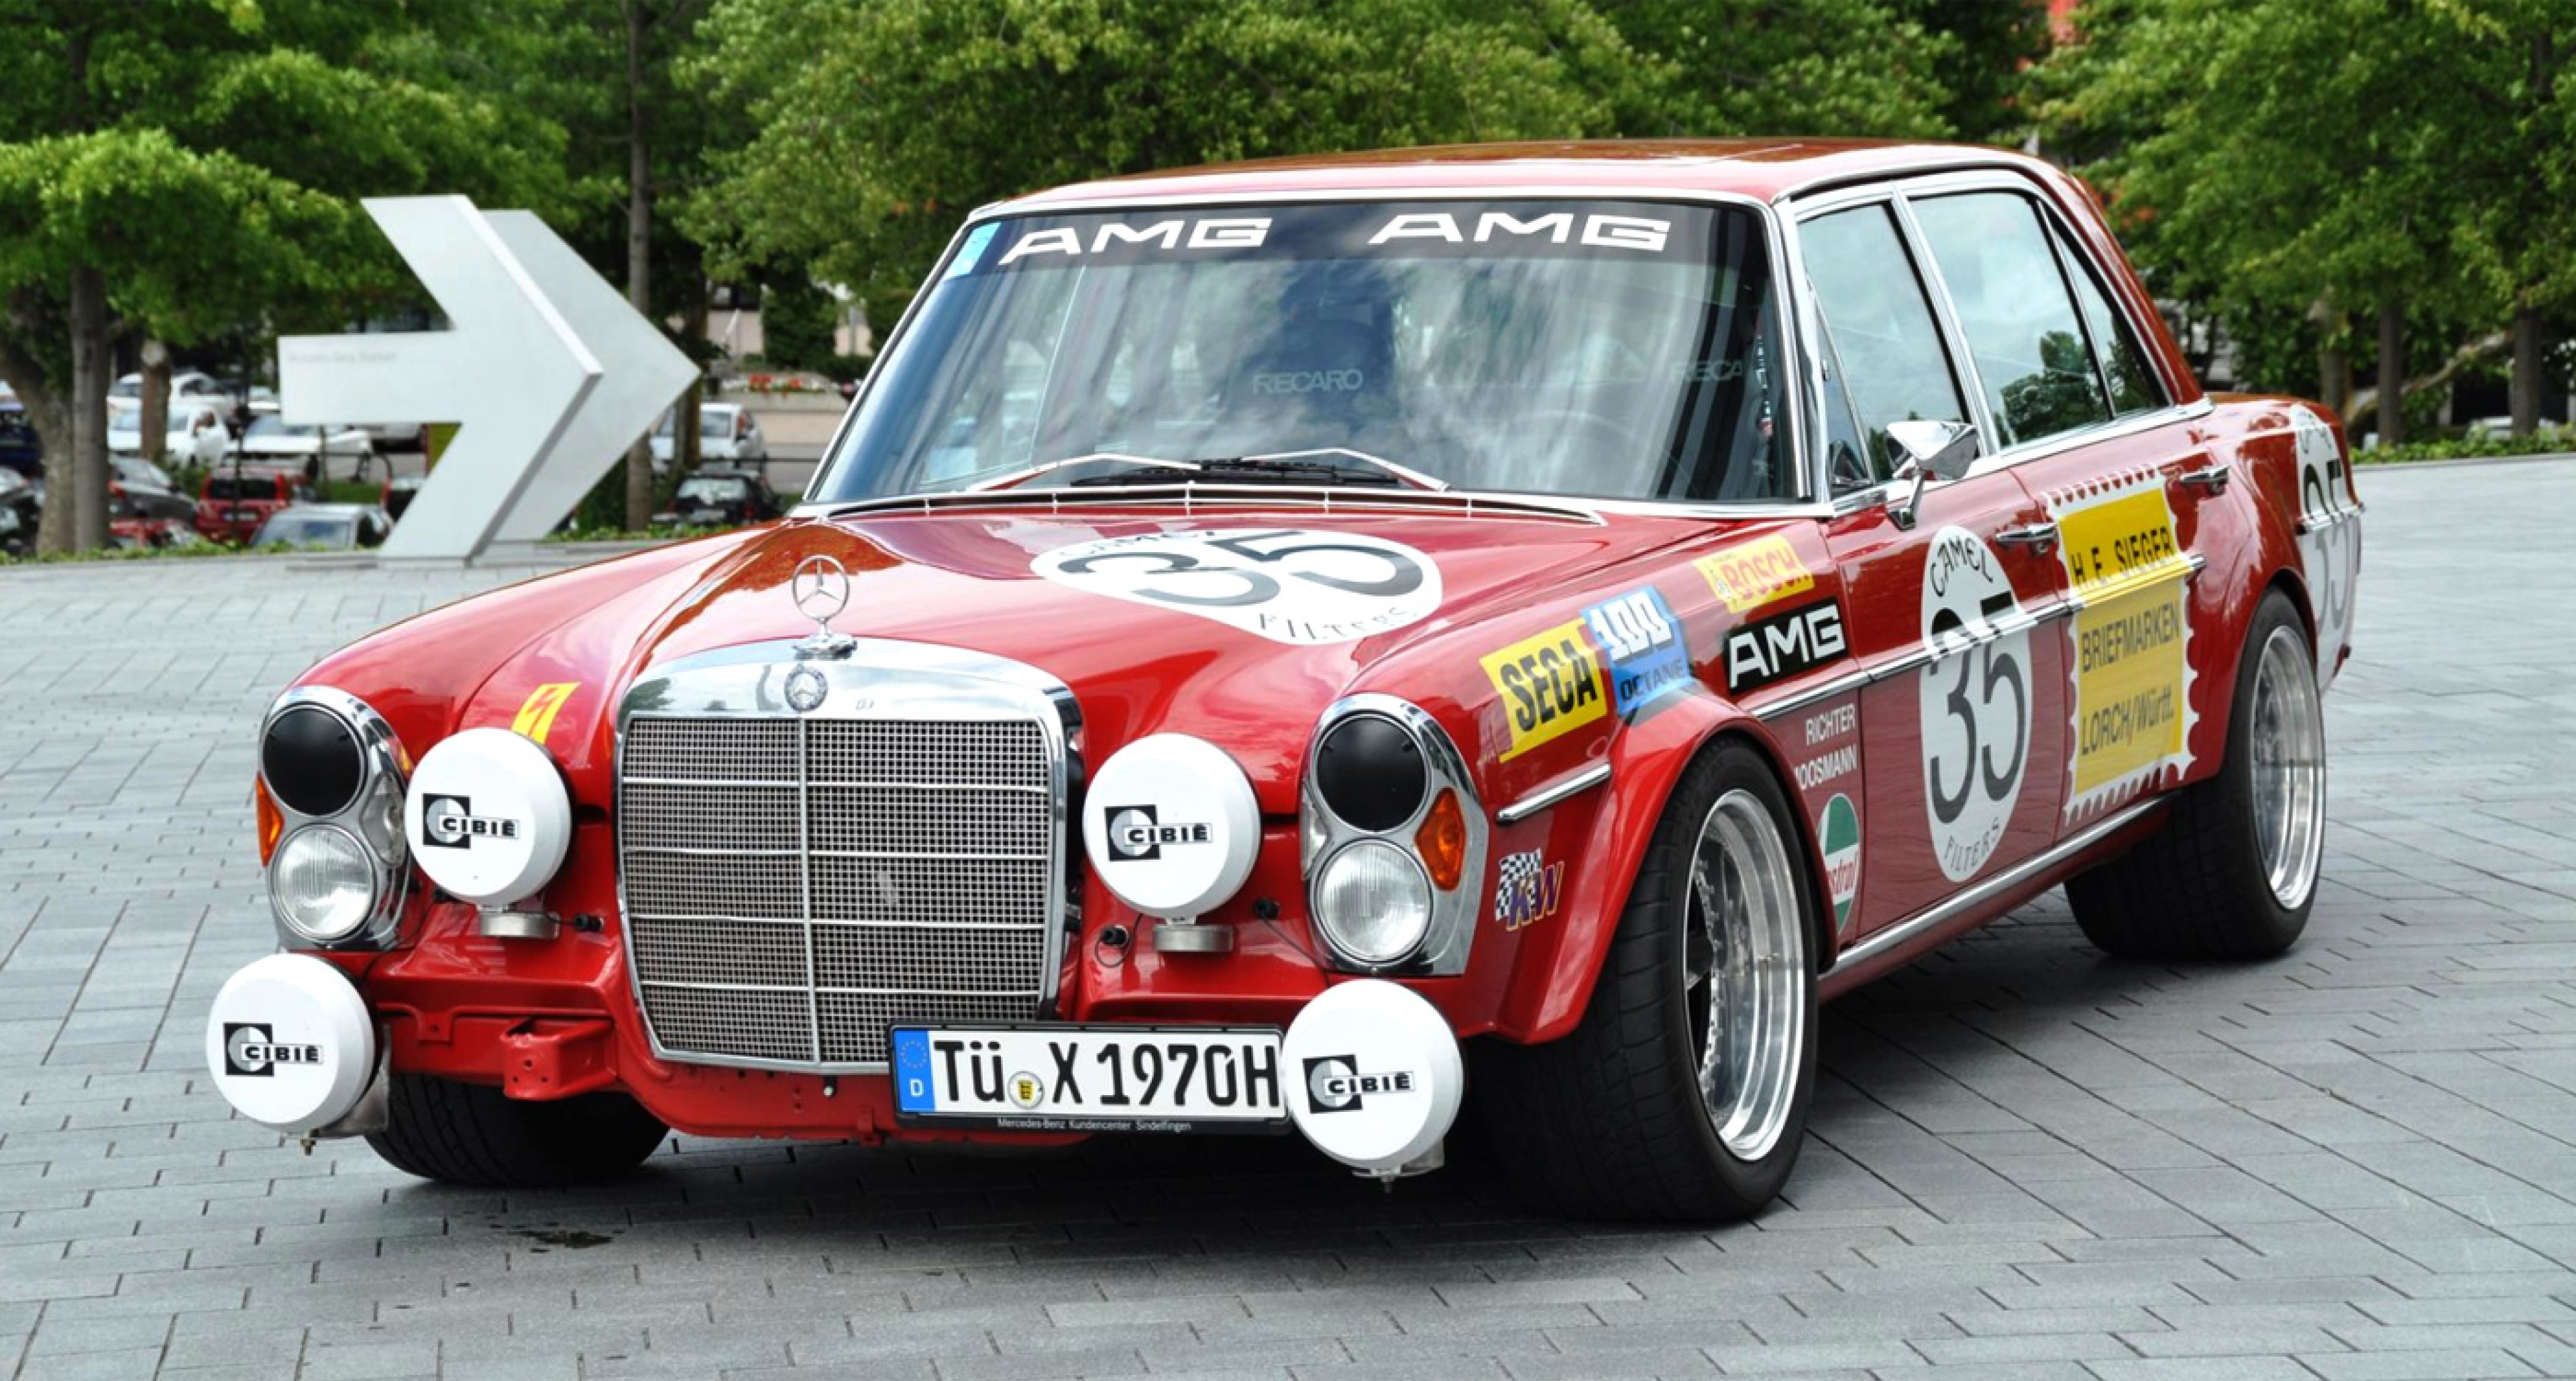 Lot 40: 1970 Mercedes-Benz 300SEL 6.3 'Rote Sau' Replica Saloon (€ 160,000 - 210,000)